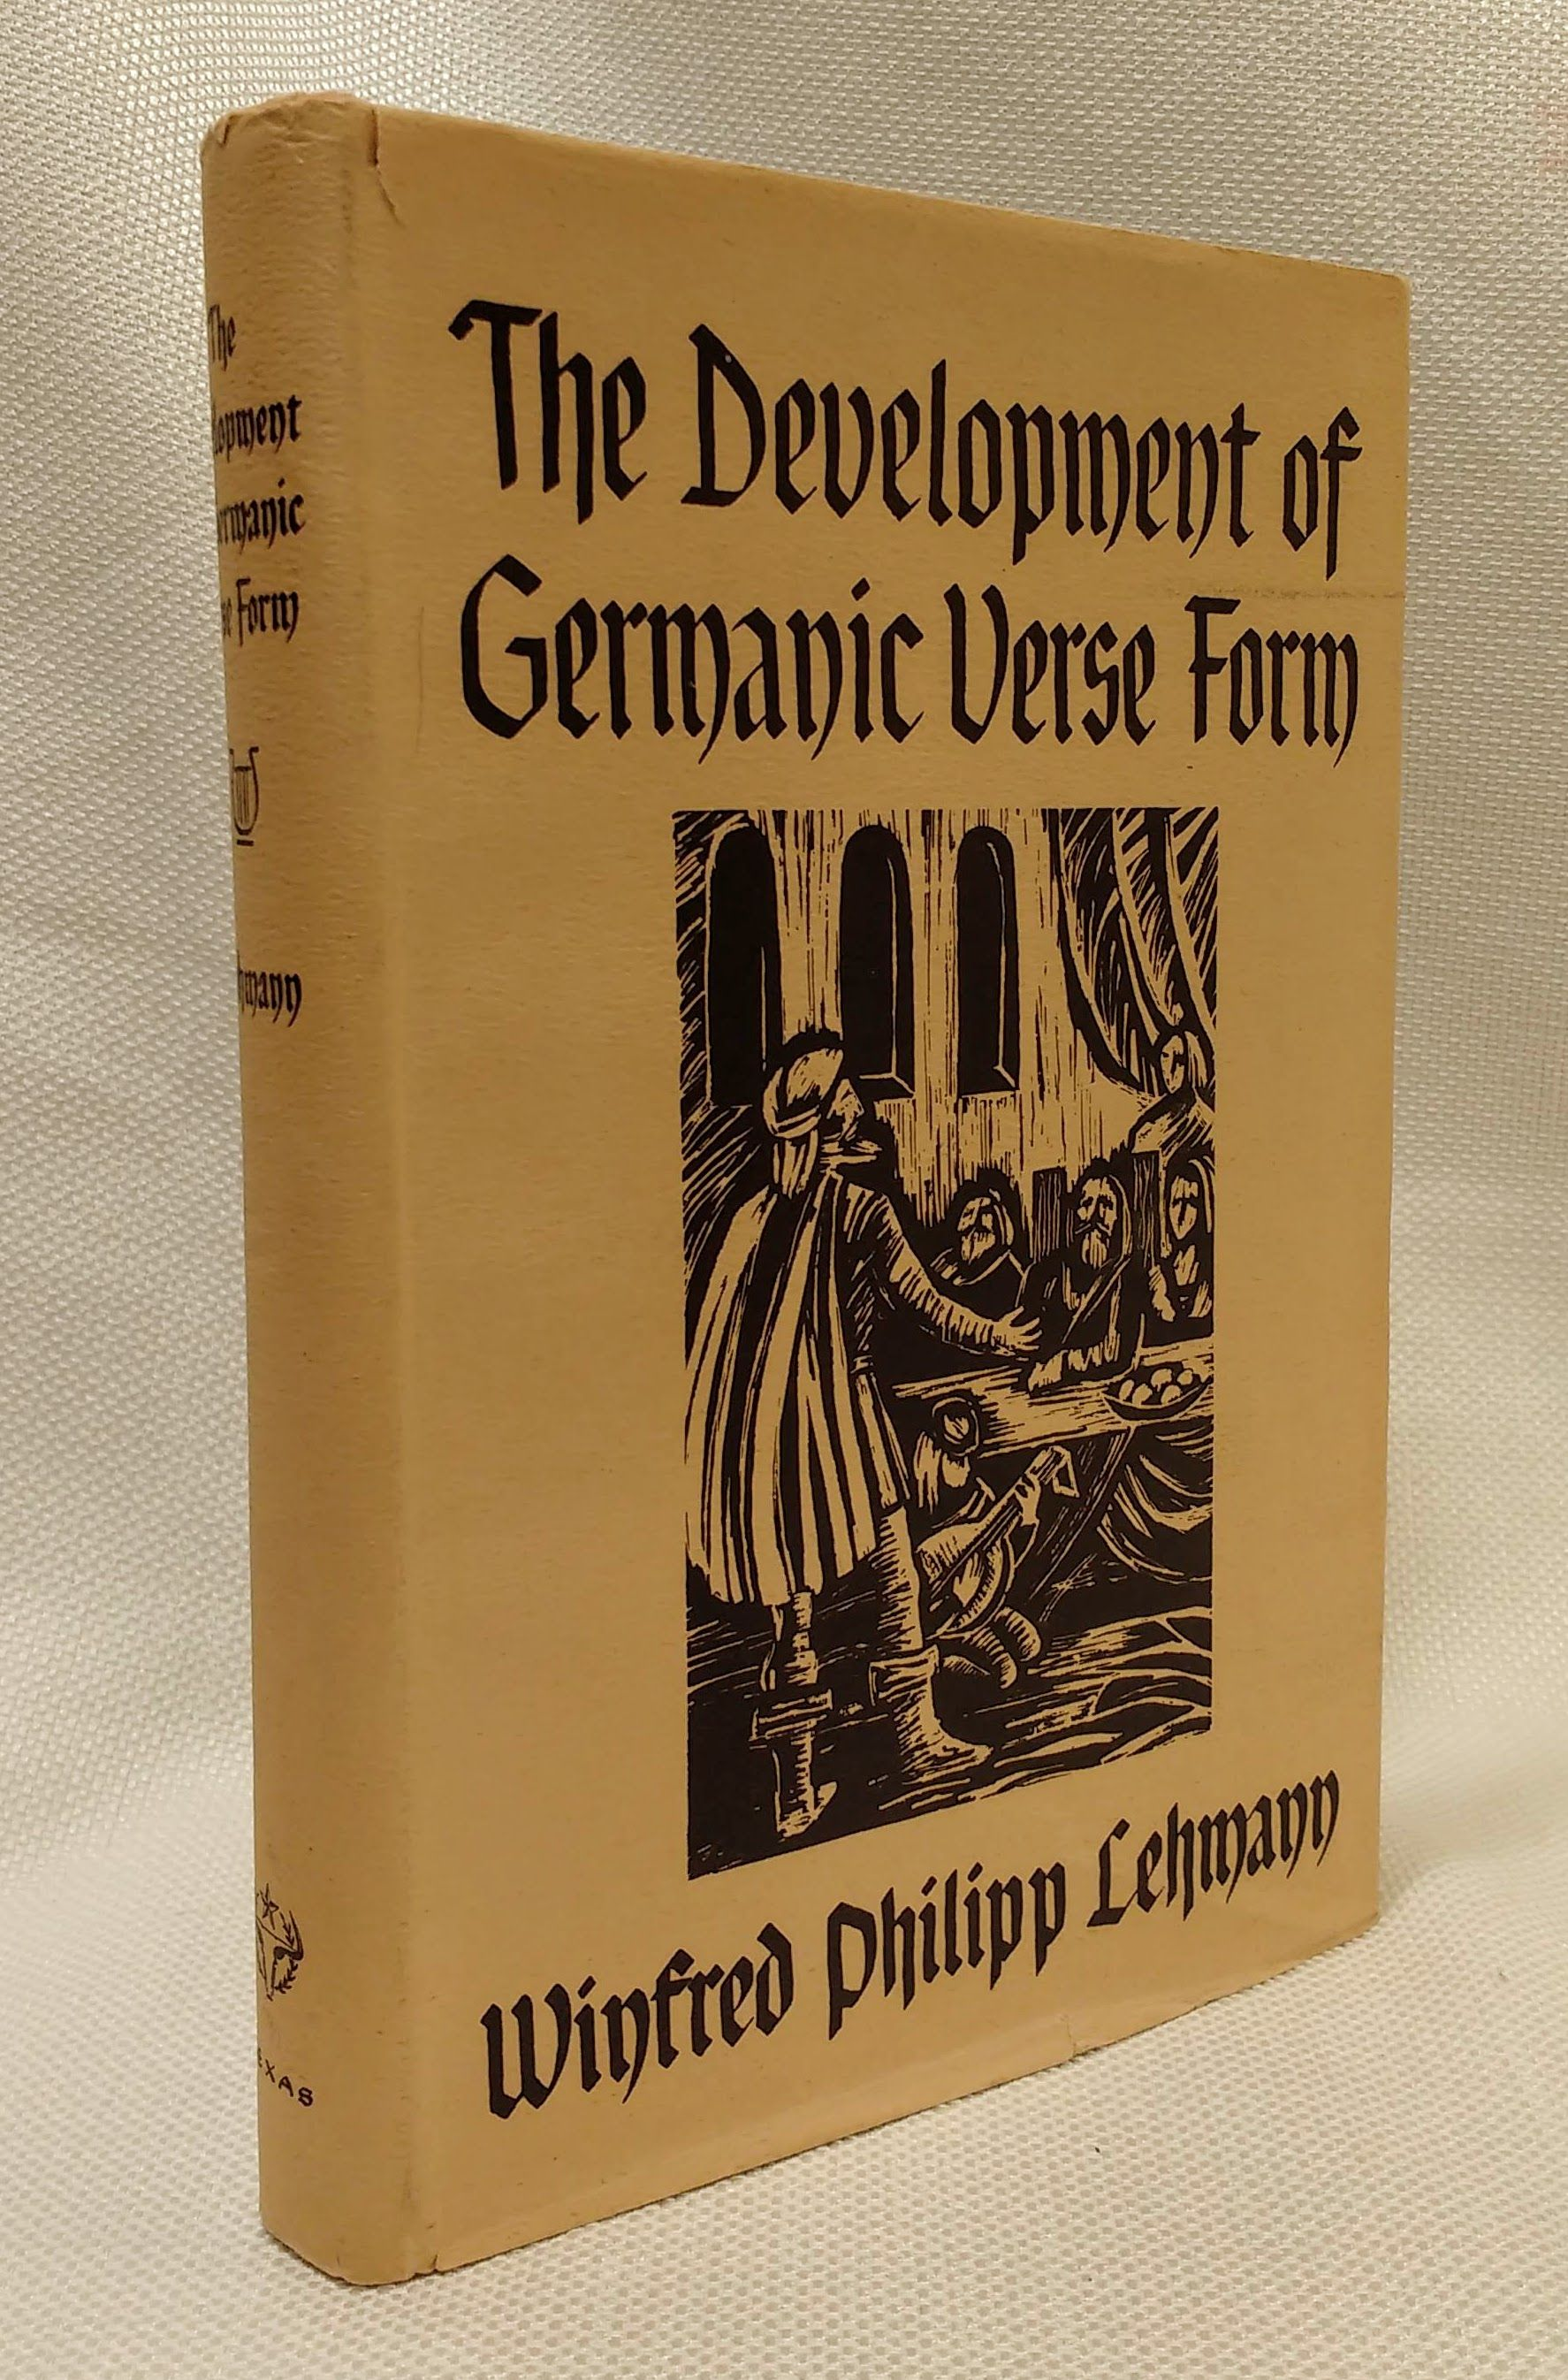 The Development of Germanic Verse Form [First edition, 1956], Lehmann, Winfred Philipp